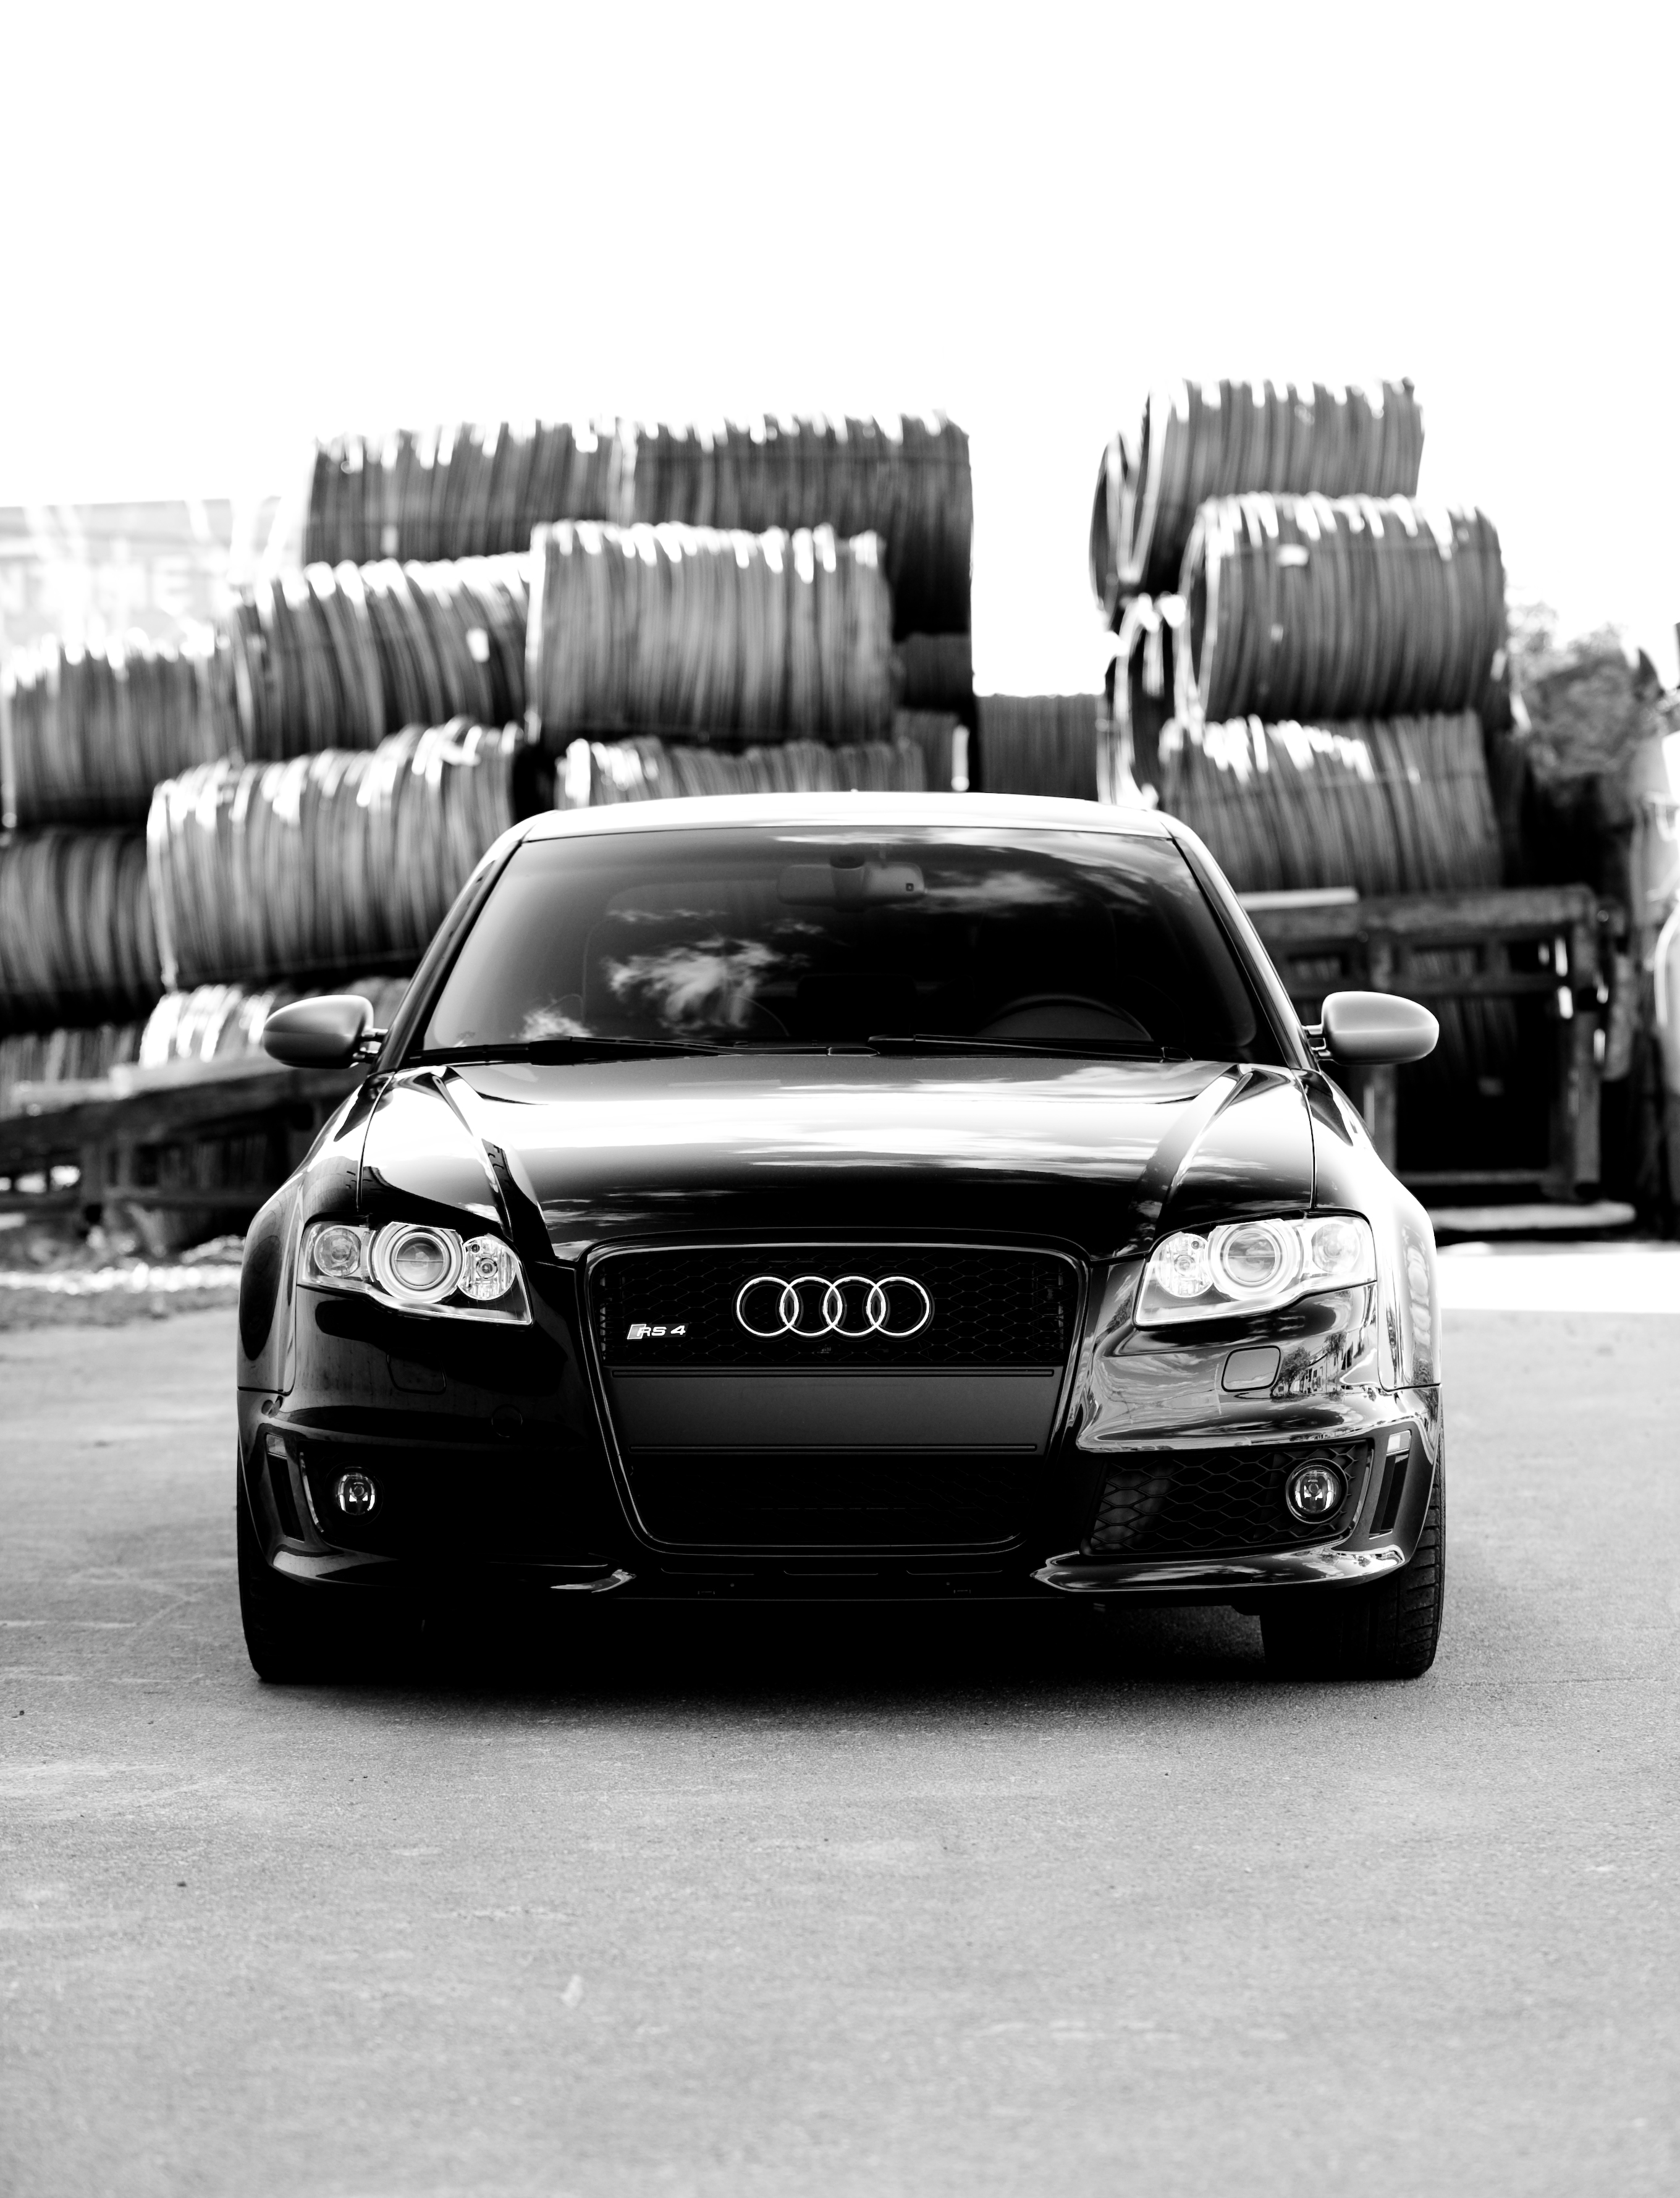 Audi RS4 2008 Phantom Black Edition